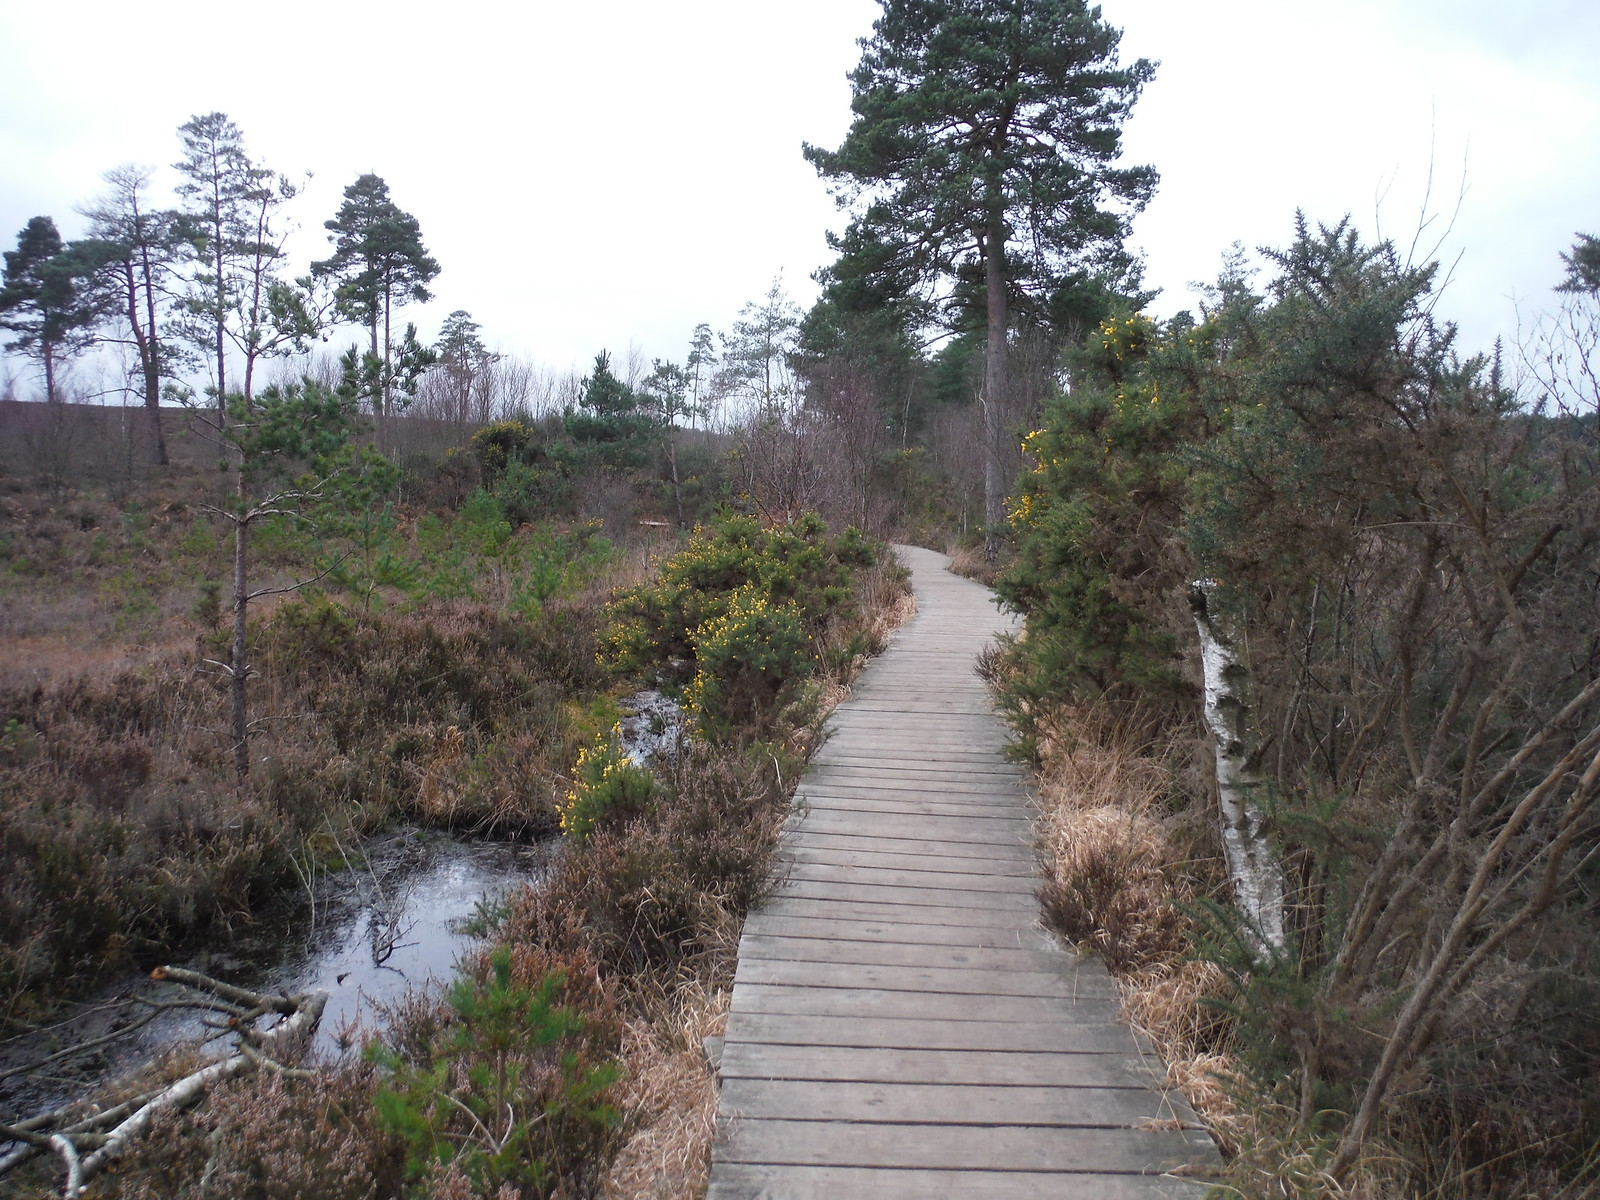 Boardwalk through Bog, Thursley Common SWC Walk 144 Haslemere to Farnham - Thursley Common Extension (Pudmore Pond Extension-within-the-Extension)